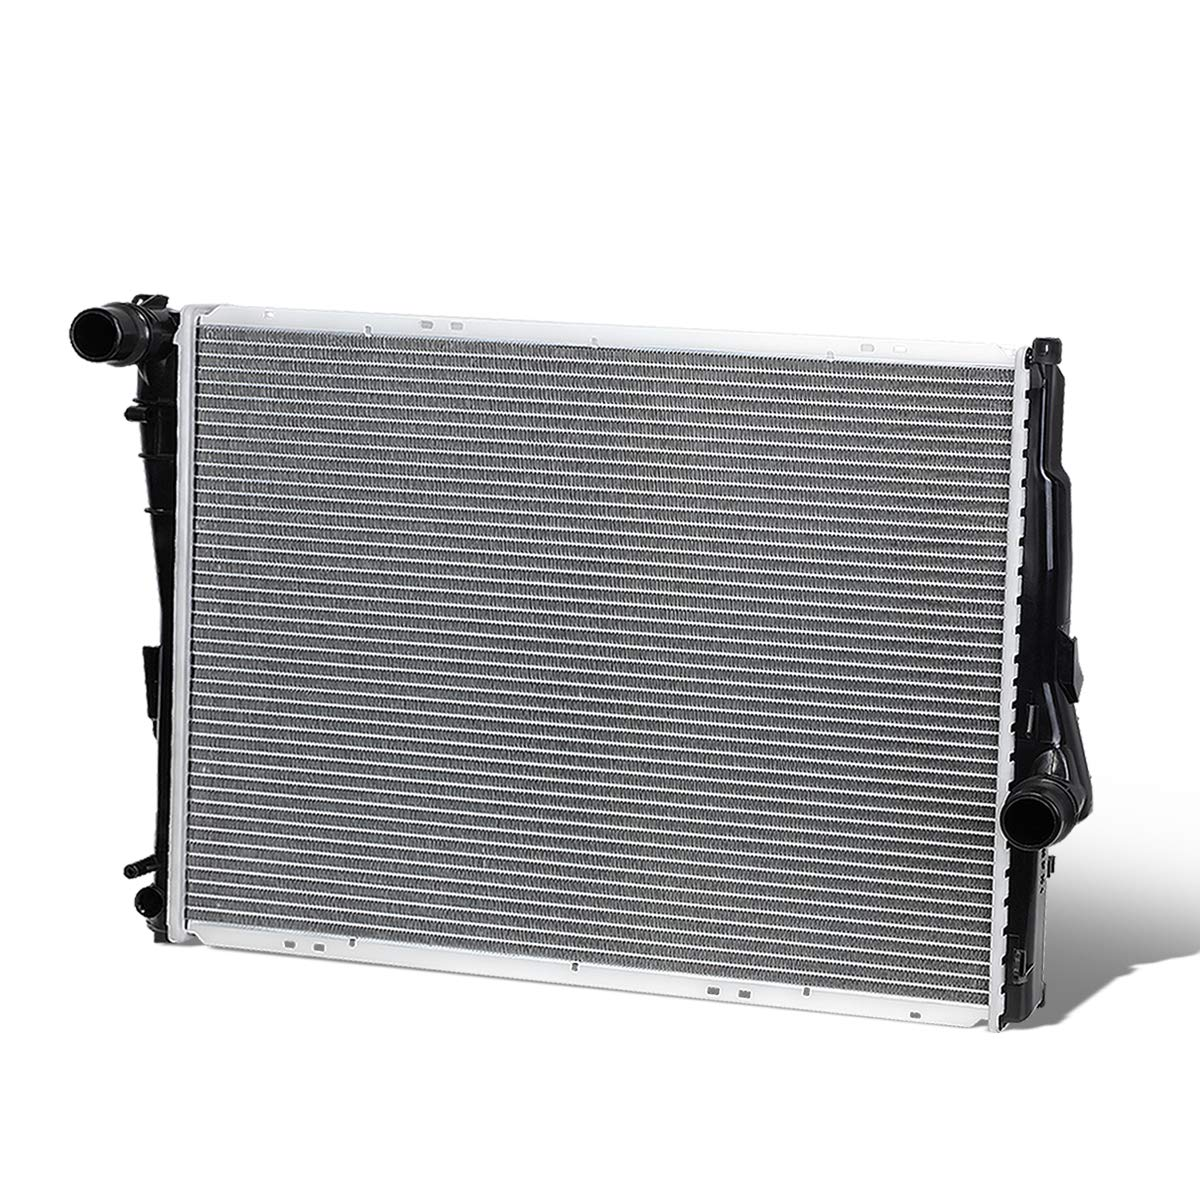 For 99-09 Bmw 3-Series / Z4 AT/MT OE Style Full Aluminum Core Radiator DPI 2636